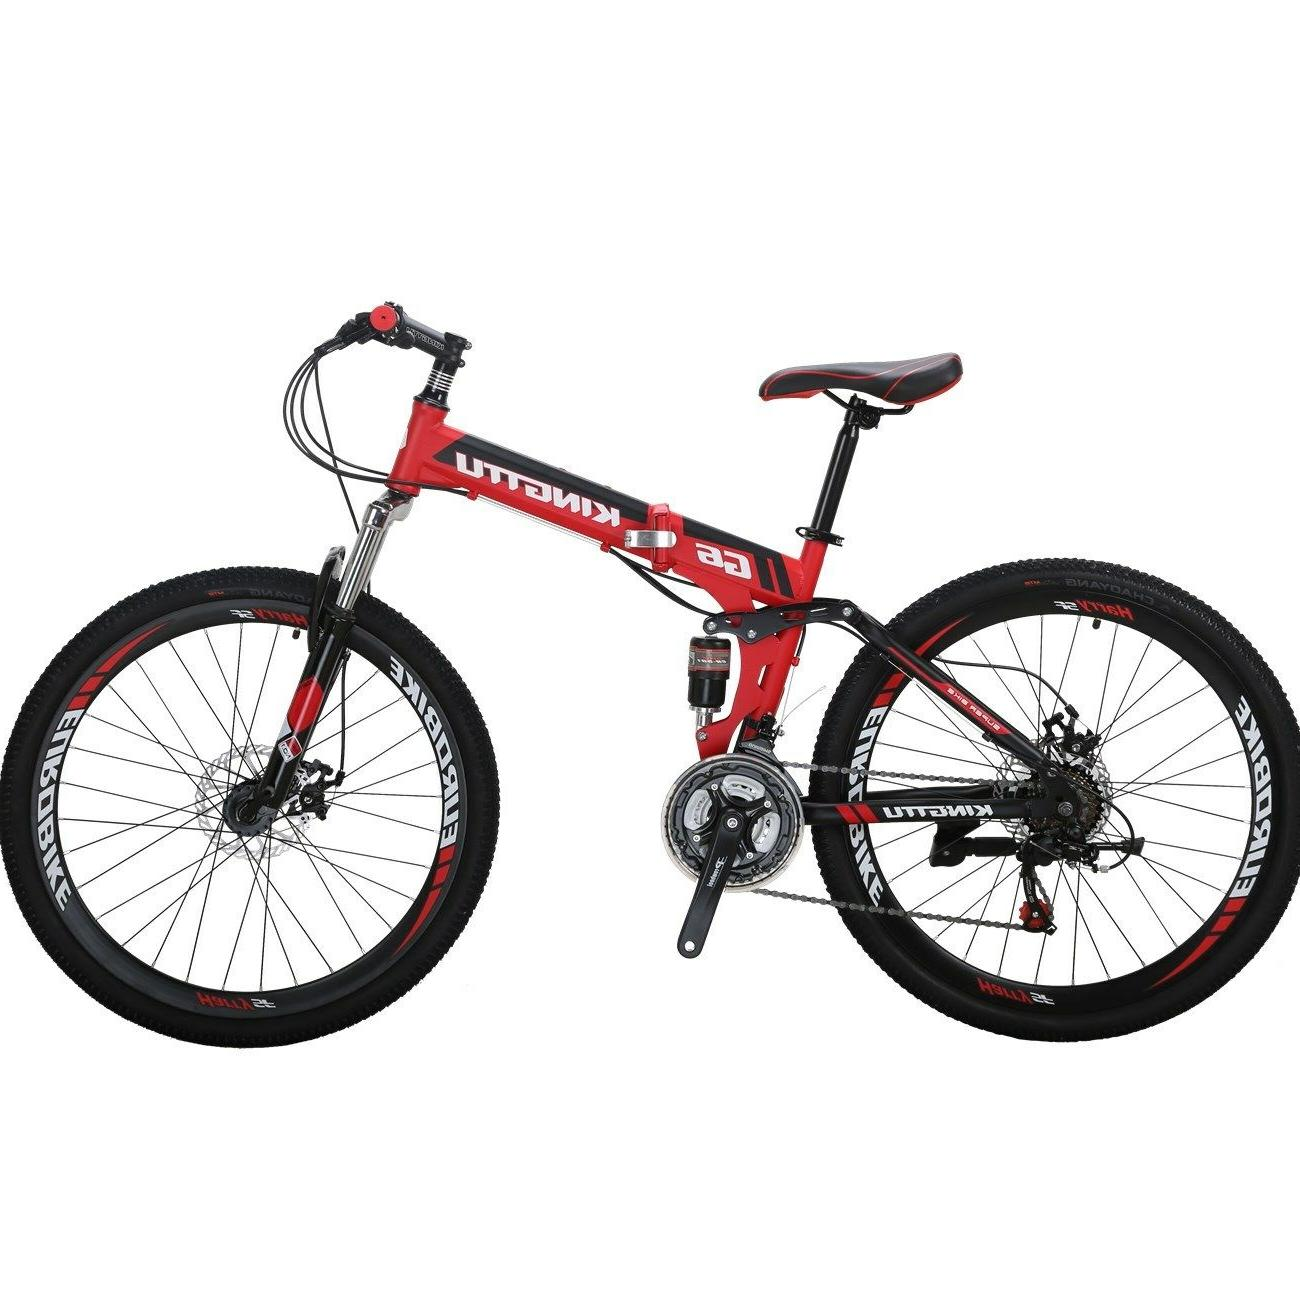 "Kingttu 26"" Full Suspension Folding Mountain Bike  Bikes 21"